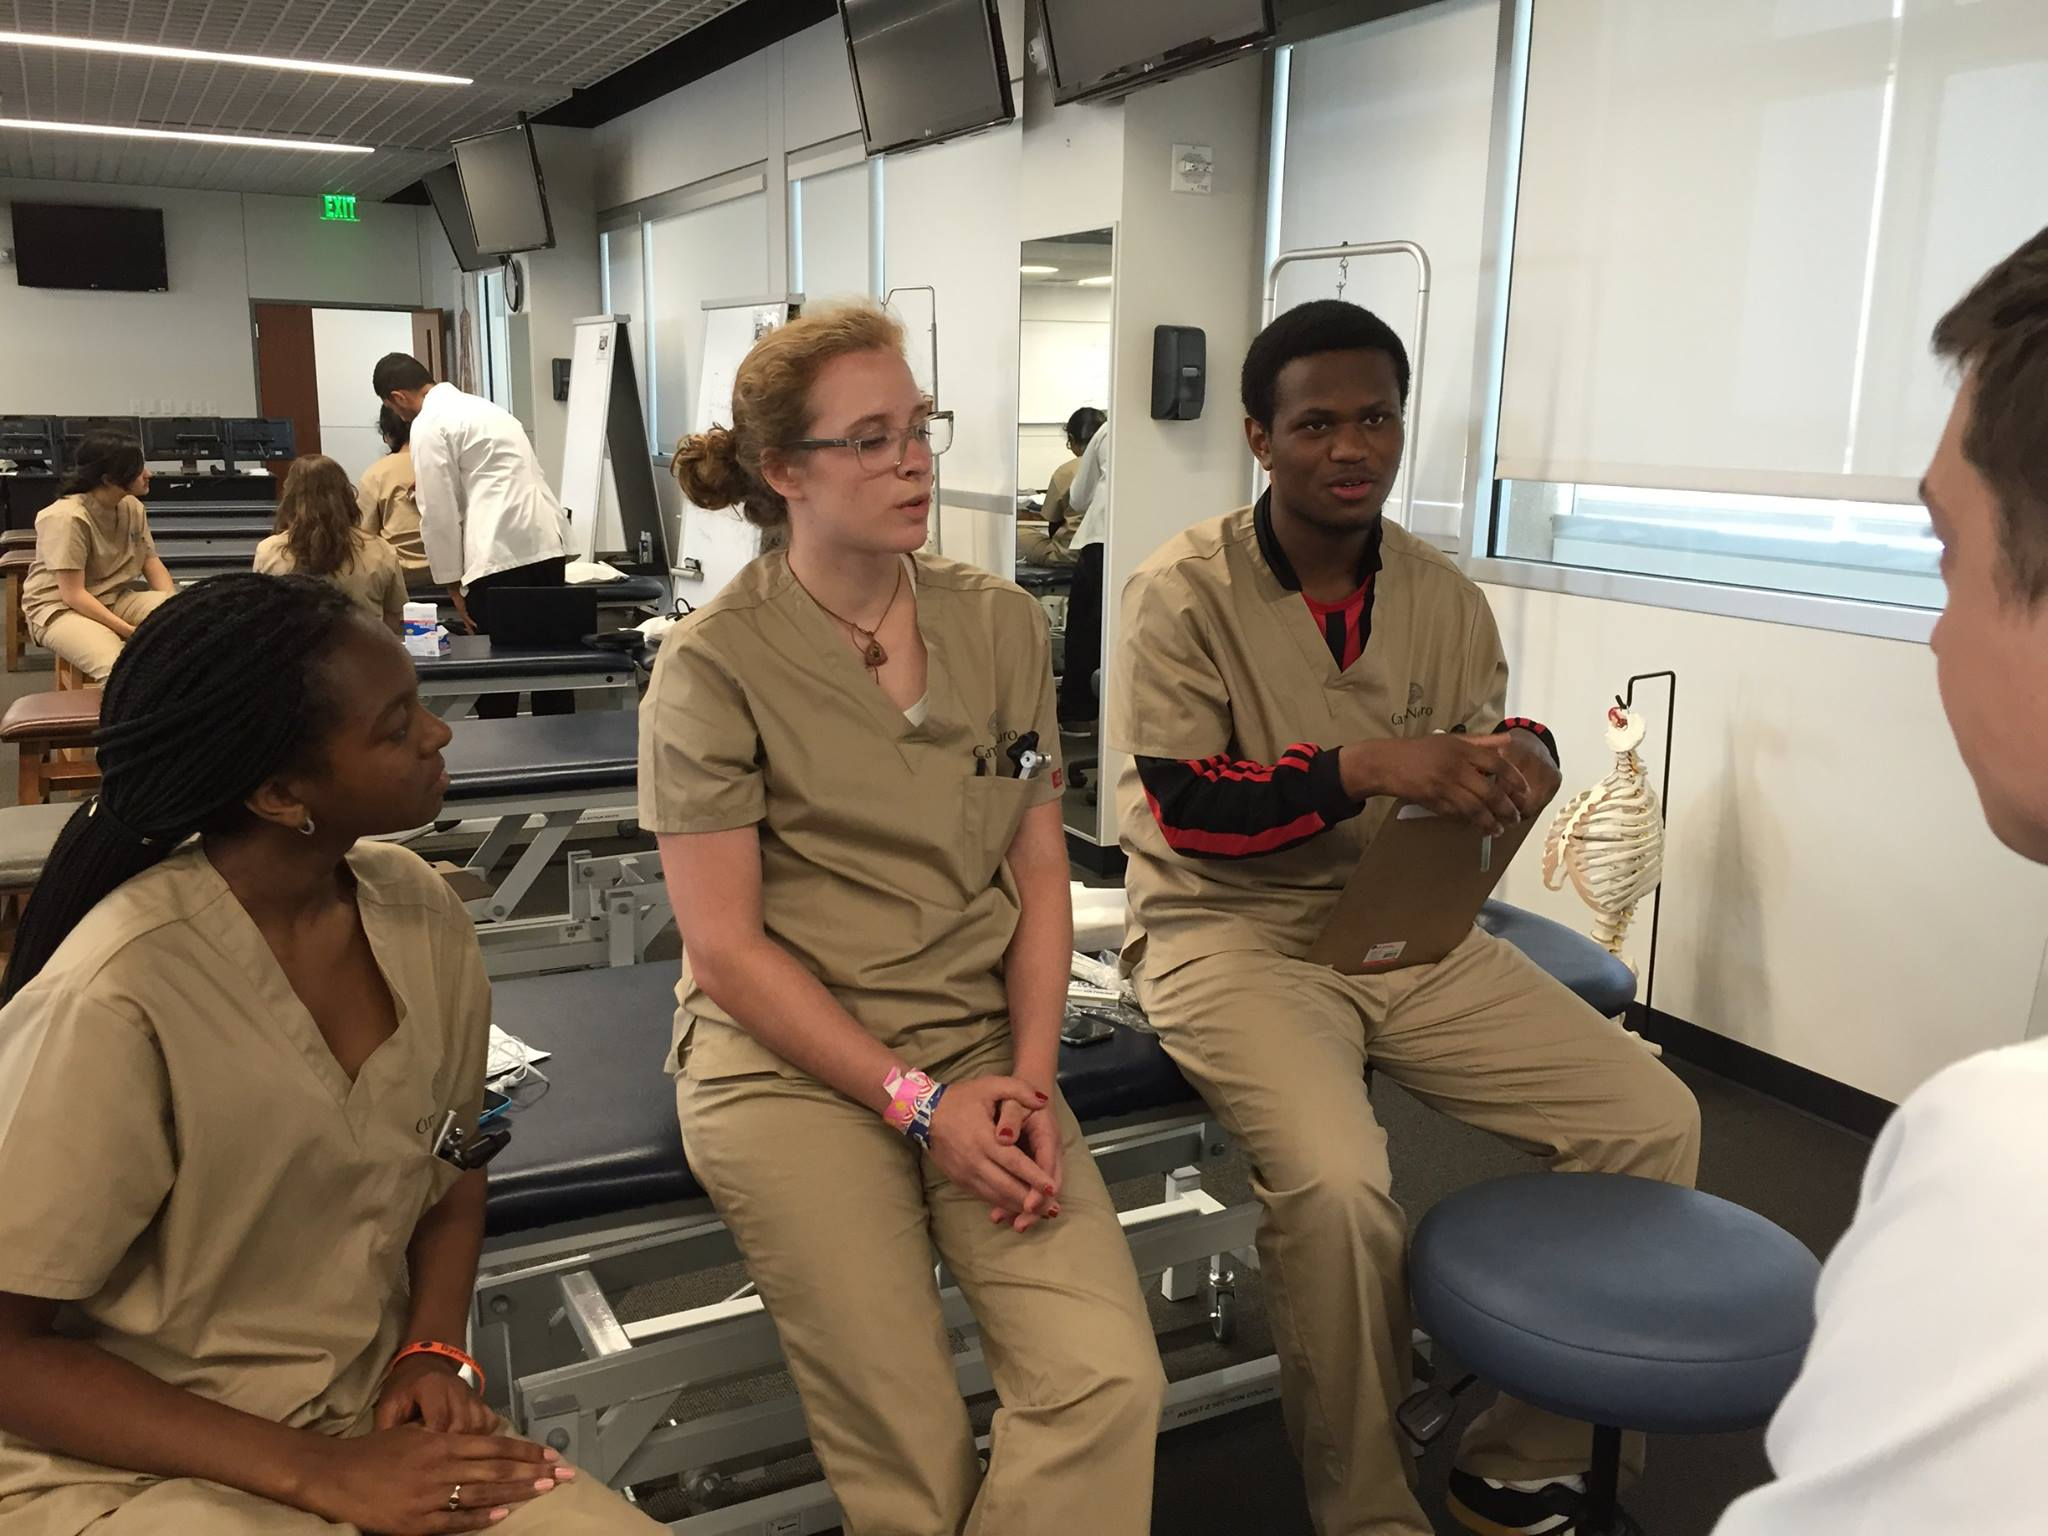 Camp Neuro students in a workshop with medical professionals.